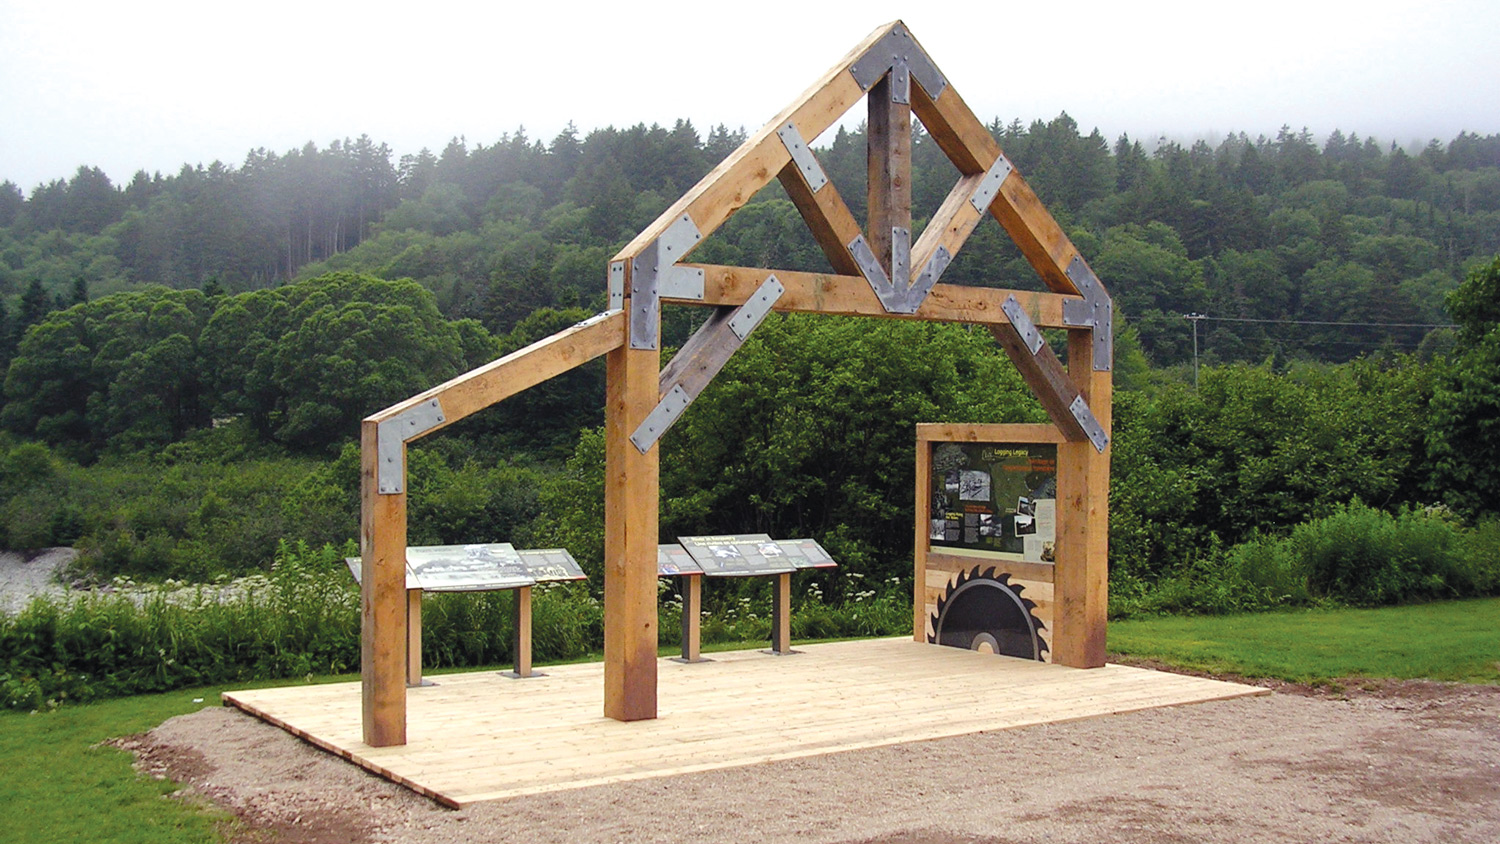 HISTORIC LOGGING HERITAGE Built structures and graphic panels at Point Wolfe evoke the park's historic logging heritage.